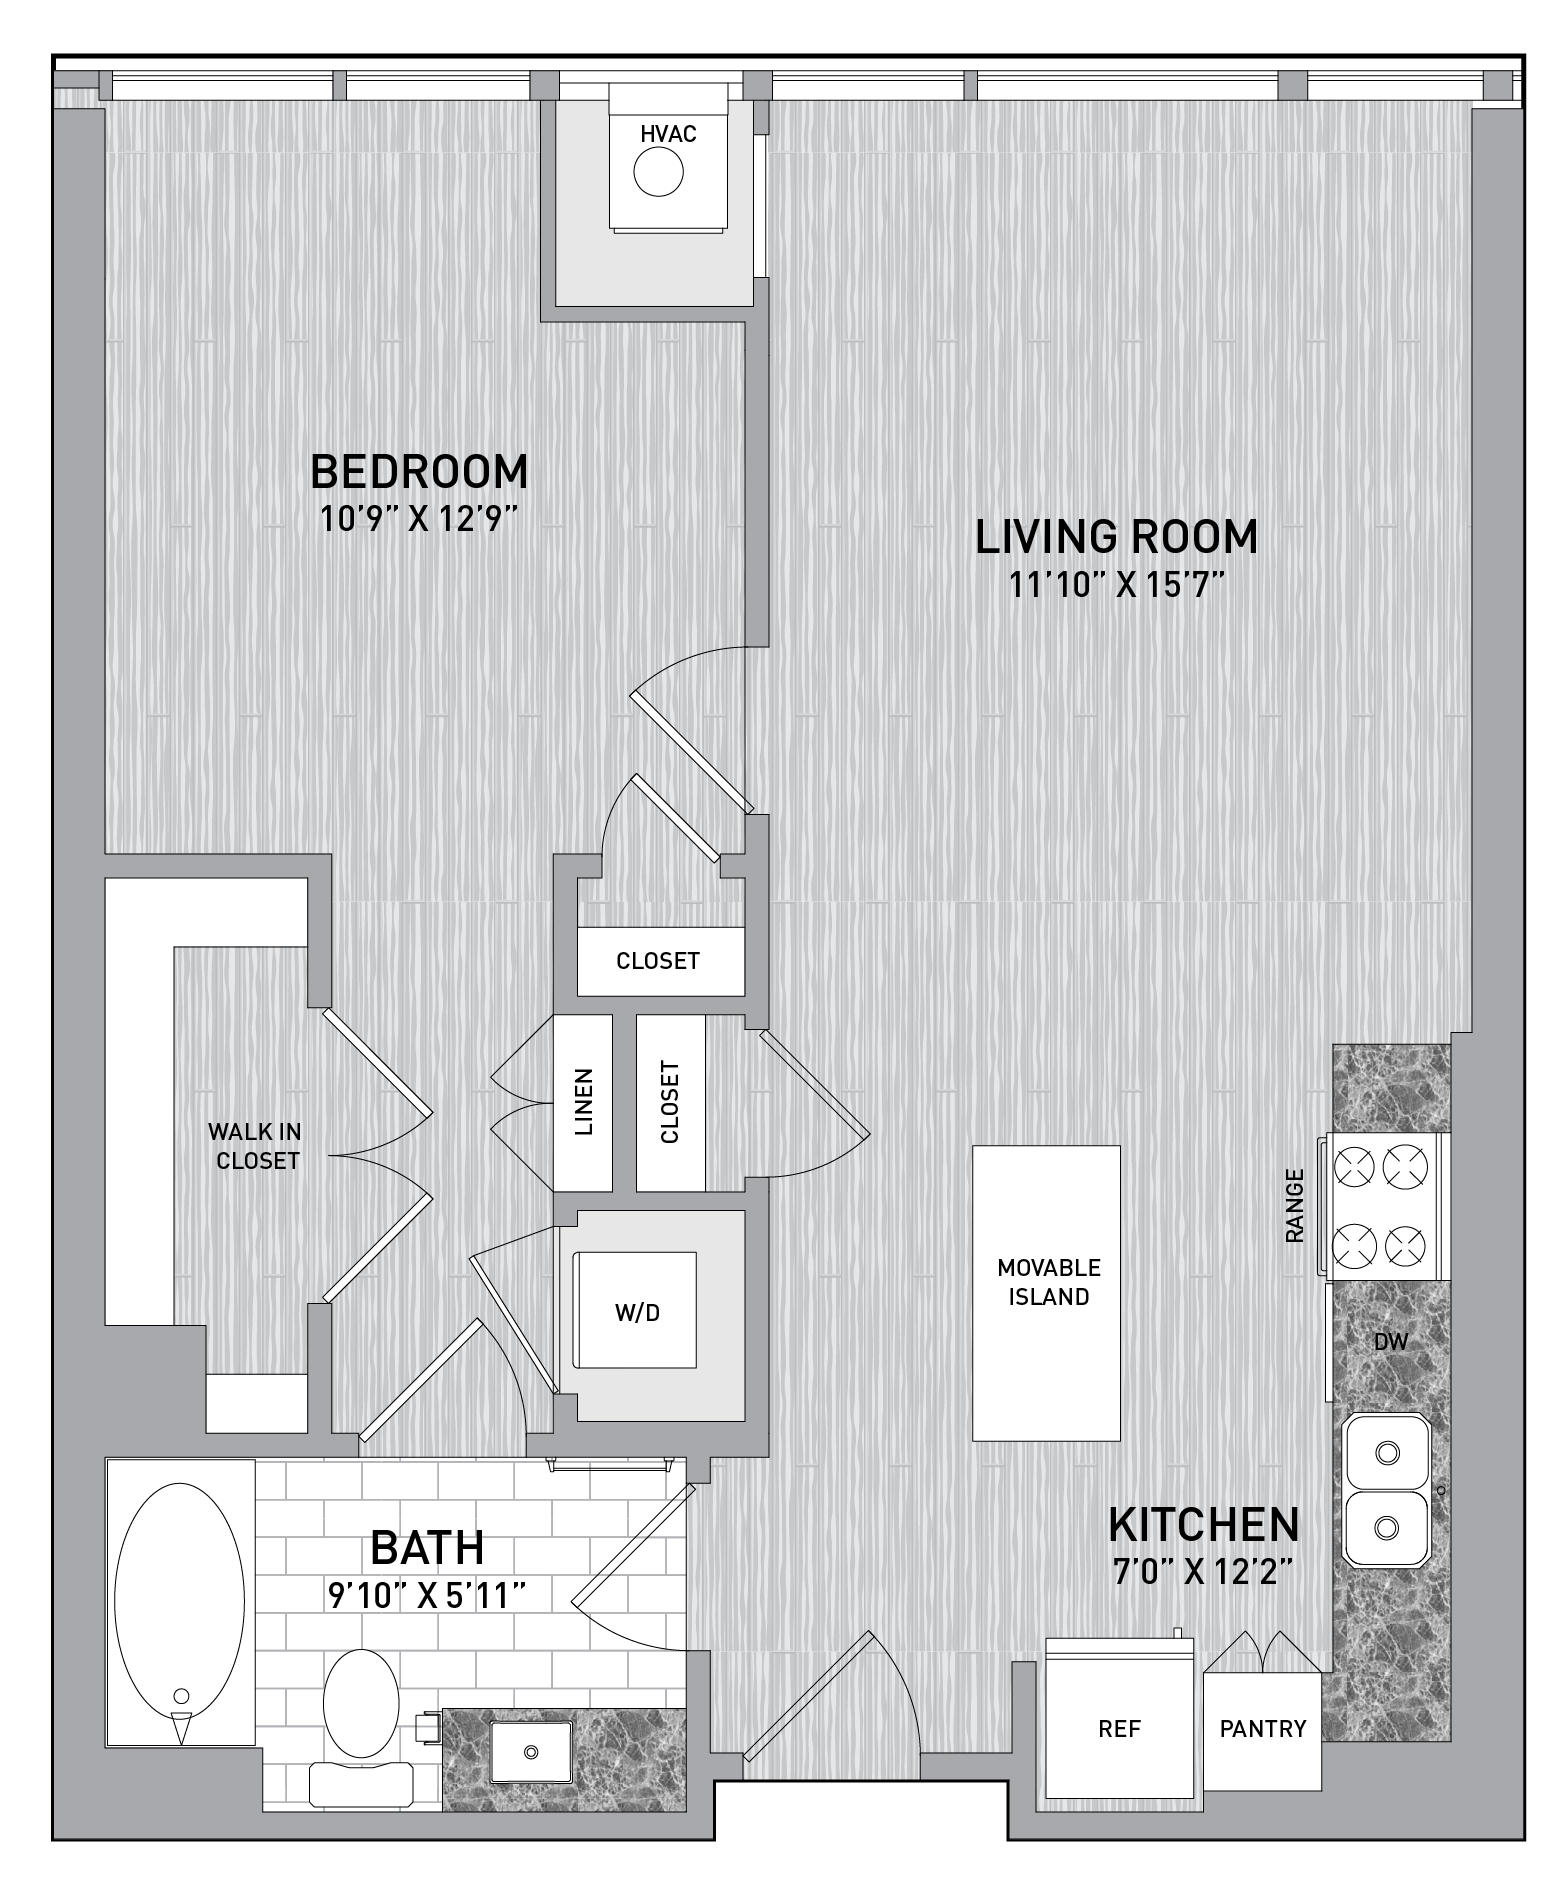 floorplan image of unit id 0715